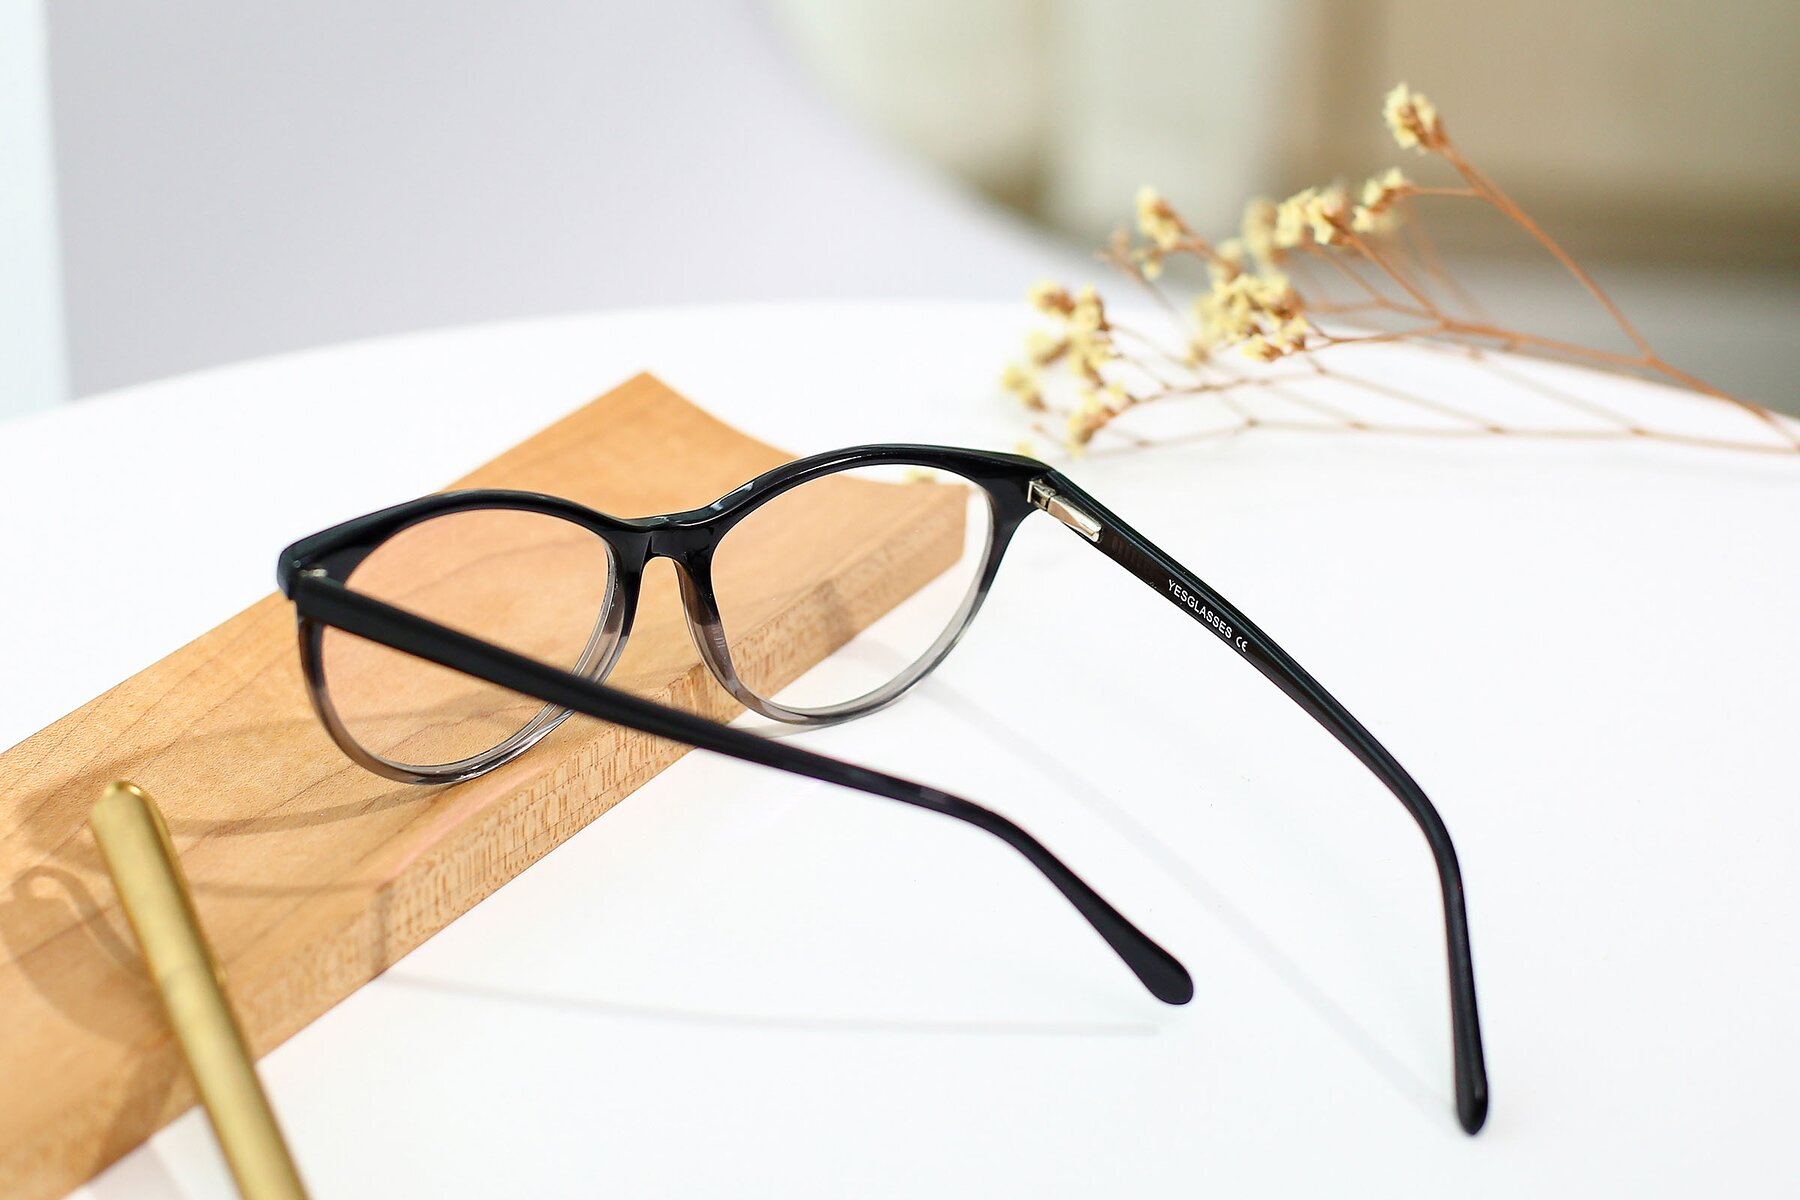 Women's lifestyle photography #3 of SR6050 in Transparent Gradient Black with Clear Eyeglass Lenses